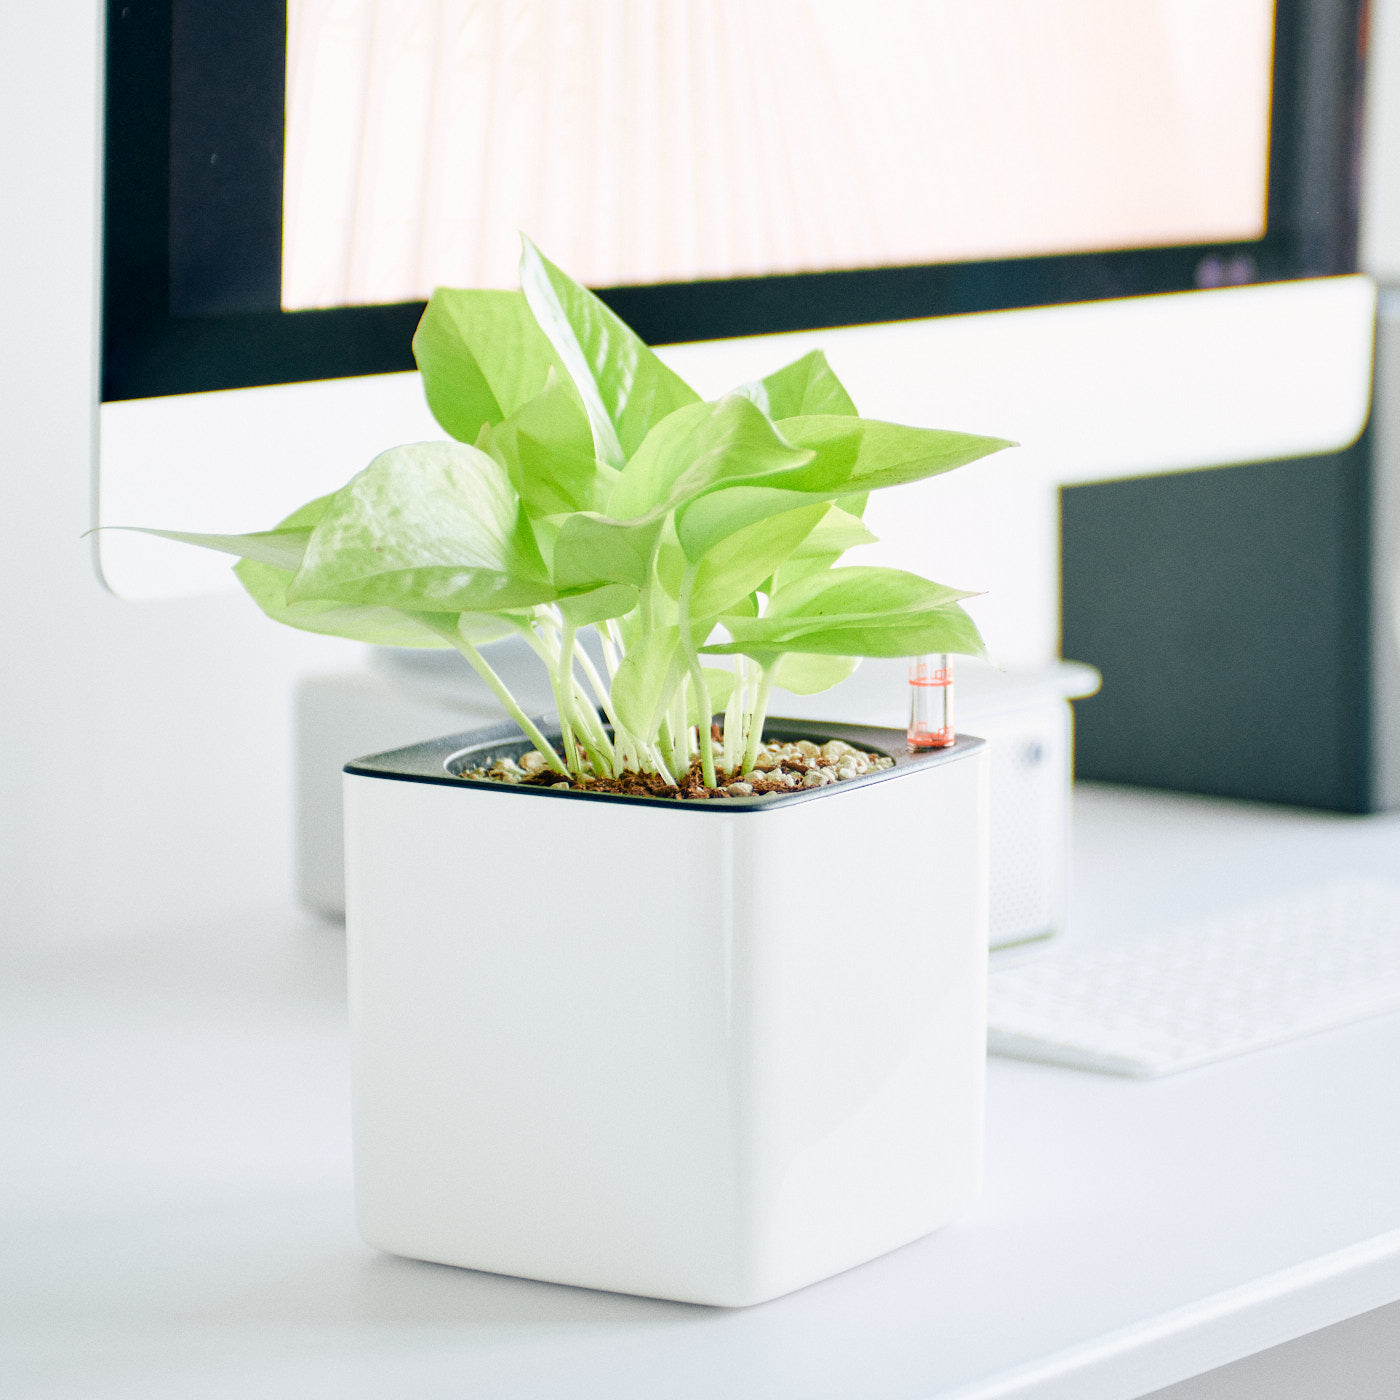 Pothos Neon In Lechuza Cube 14 Glossy White Planter | My City Plants